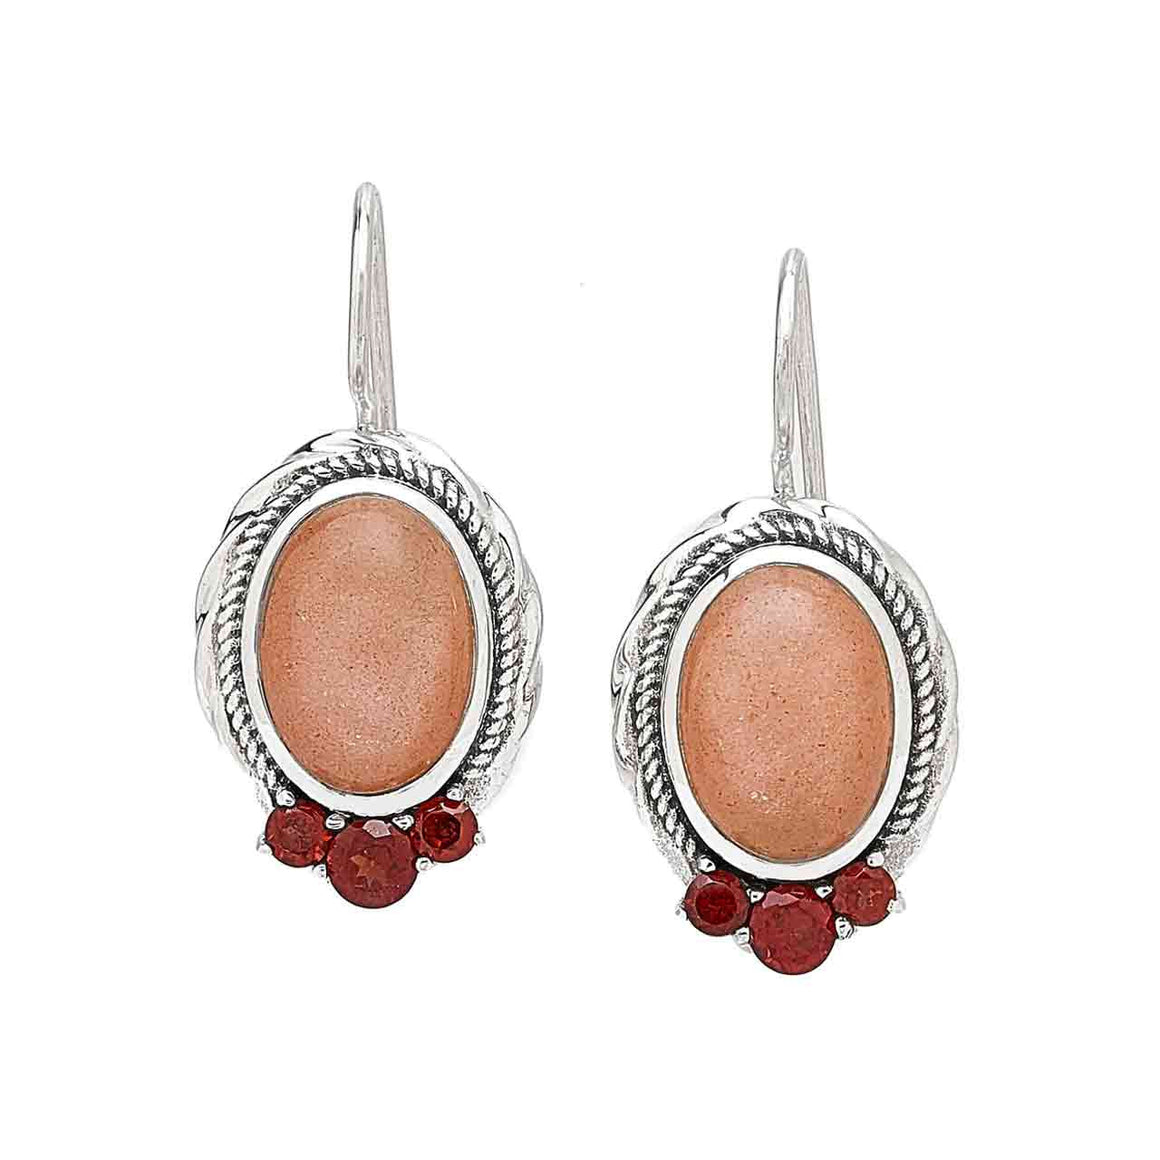 Peach Moonstone and Garnet Earrings